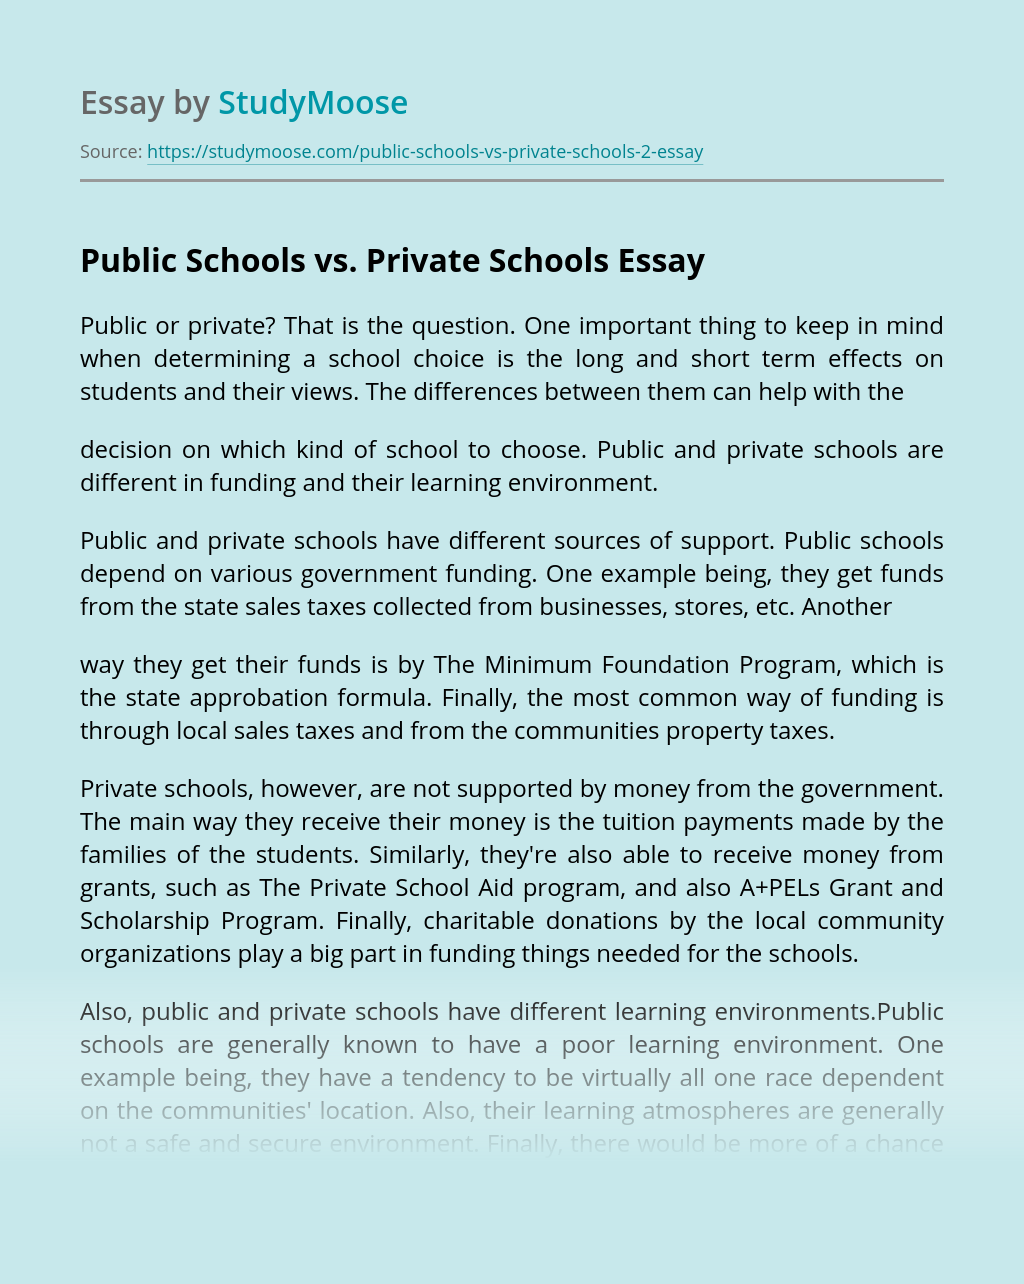 Public Schools vs. Private Schools